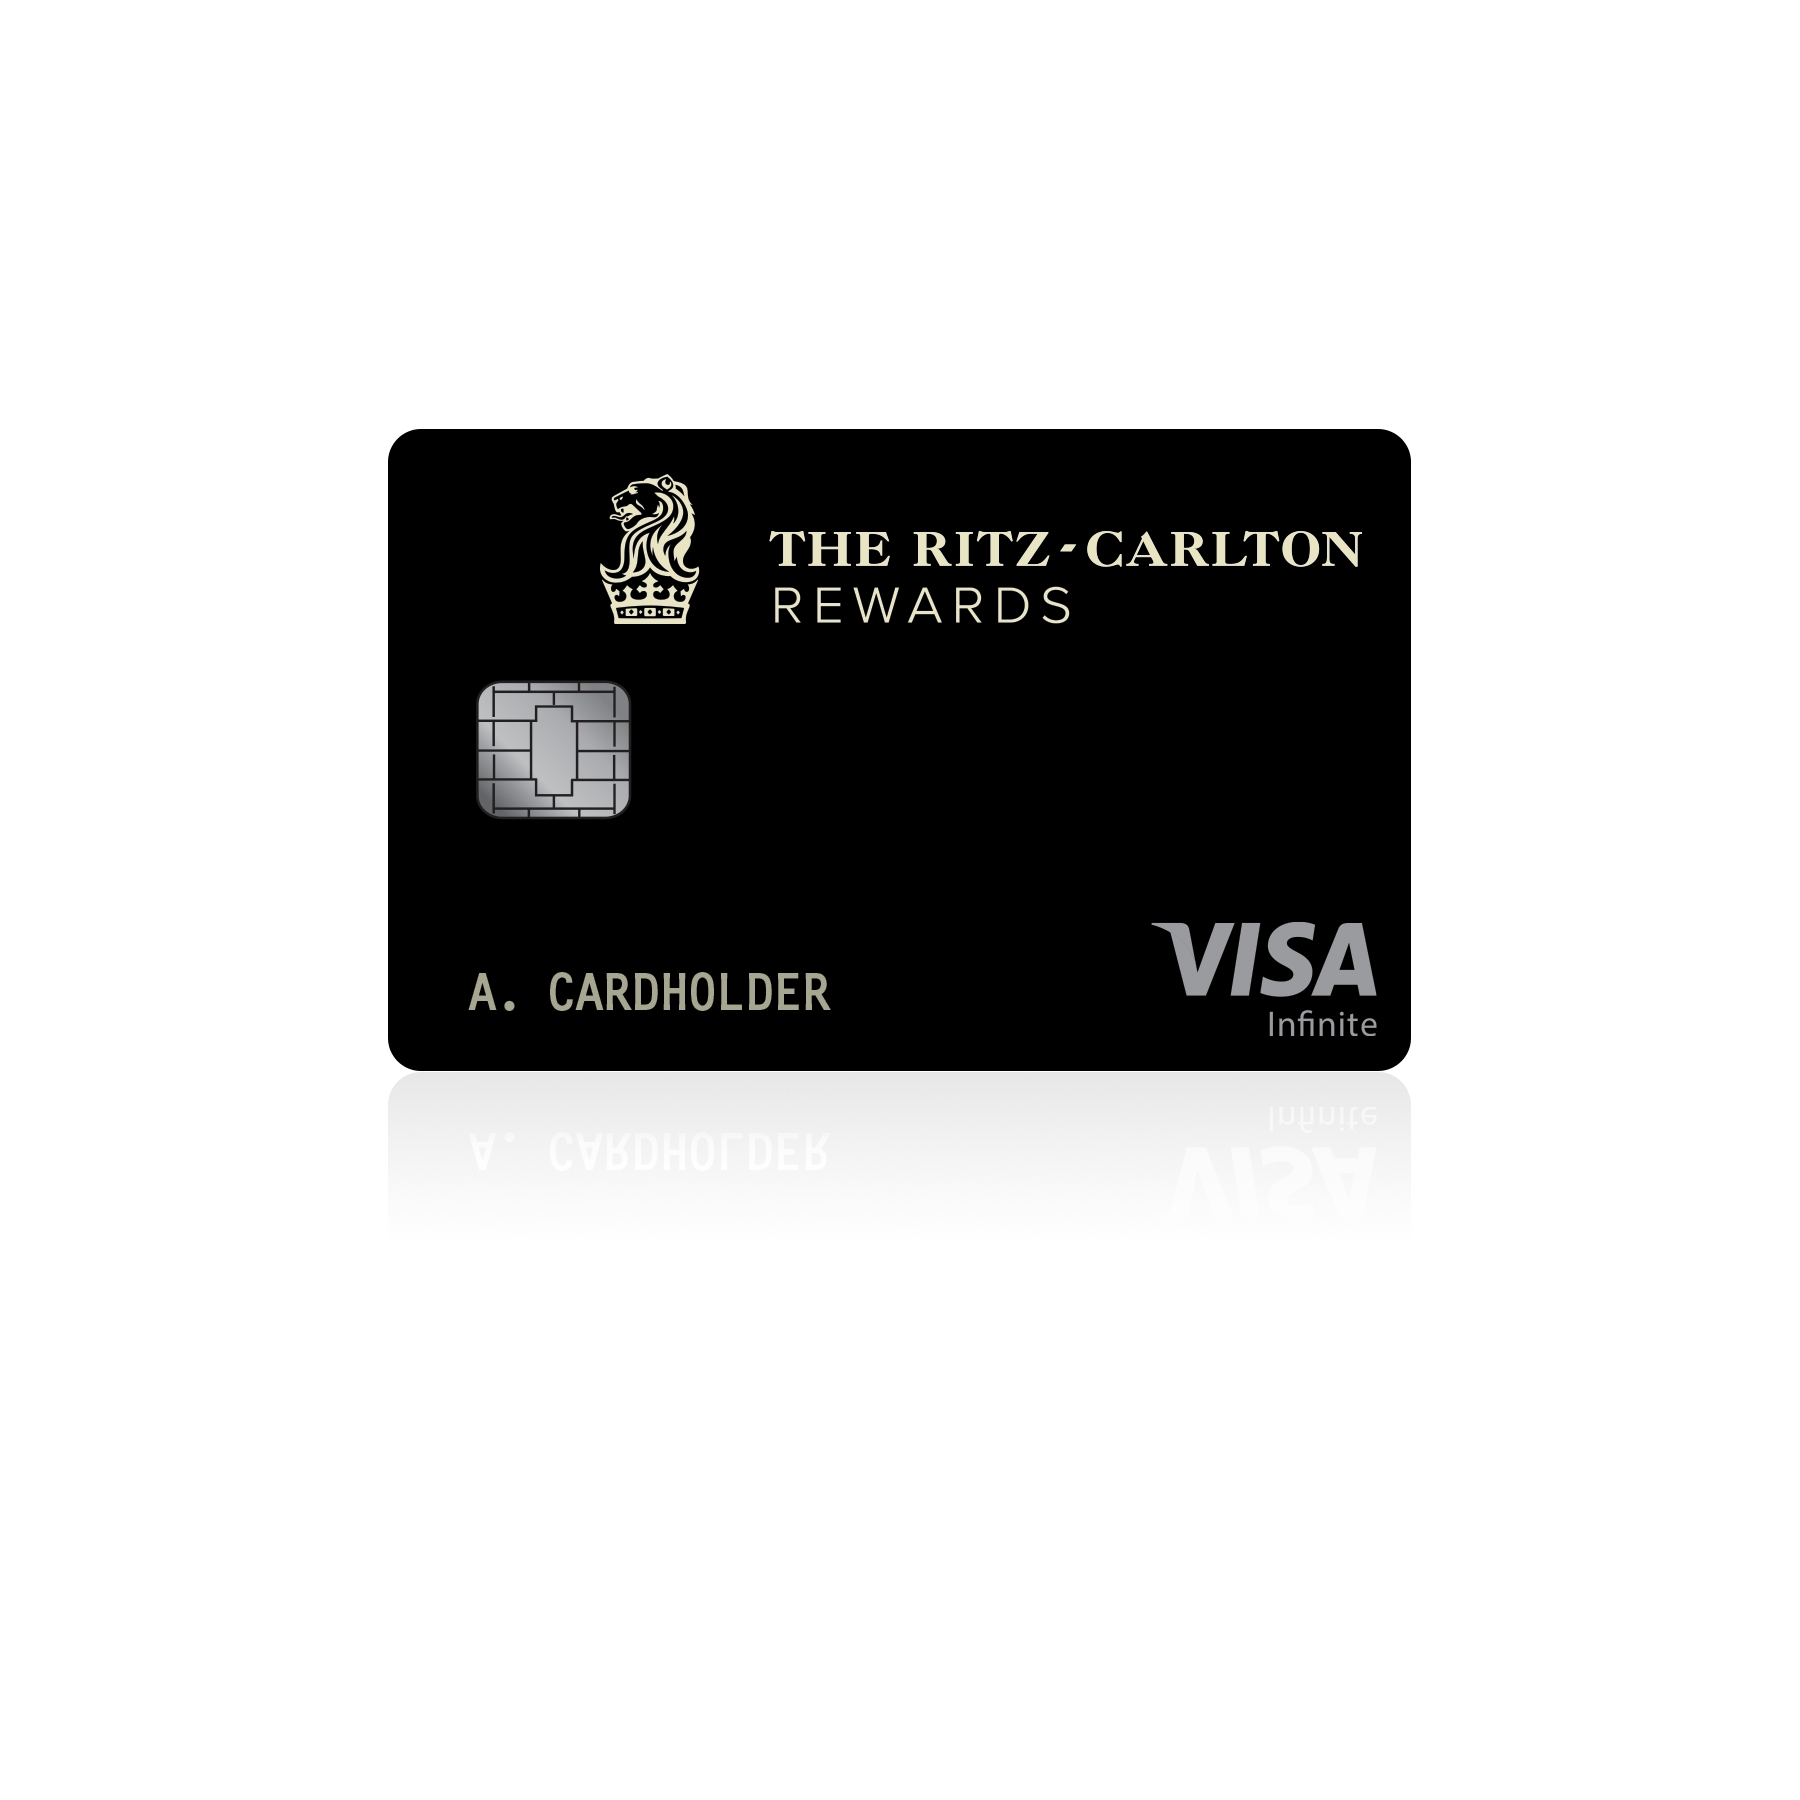 cardmembers receive access to even more extraordinary experiences